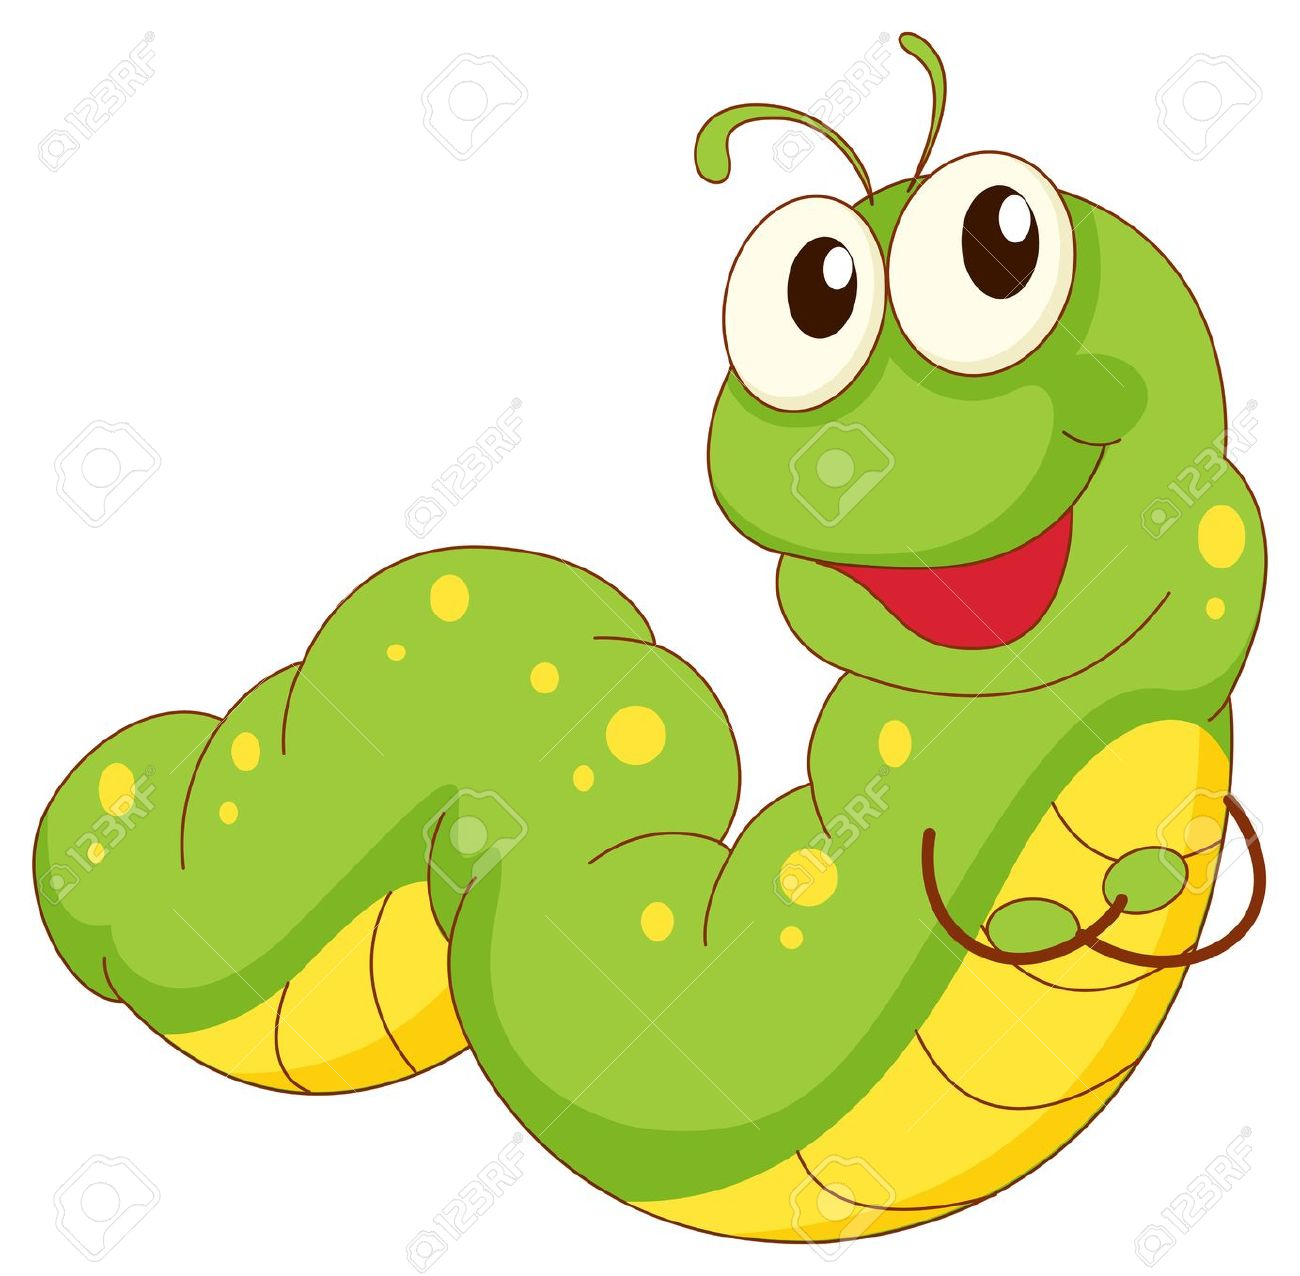 Long green caterpillar clipart.